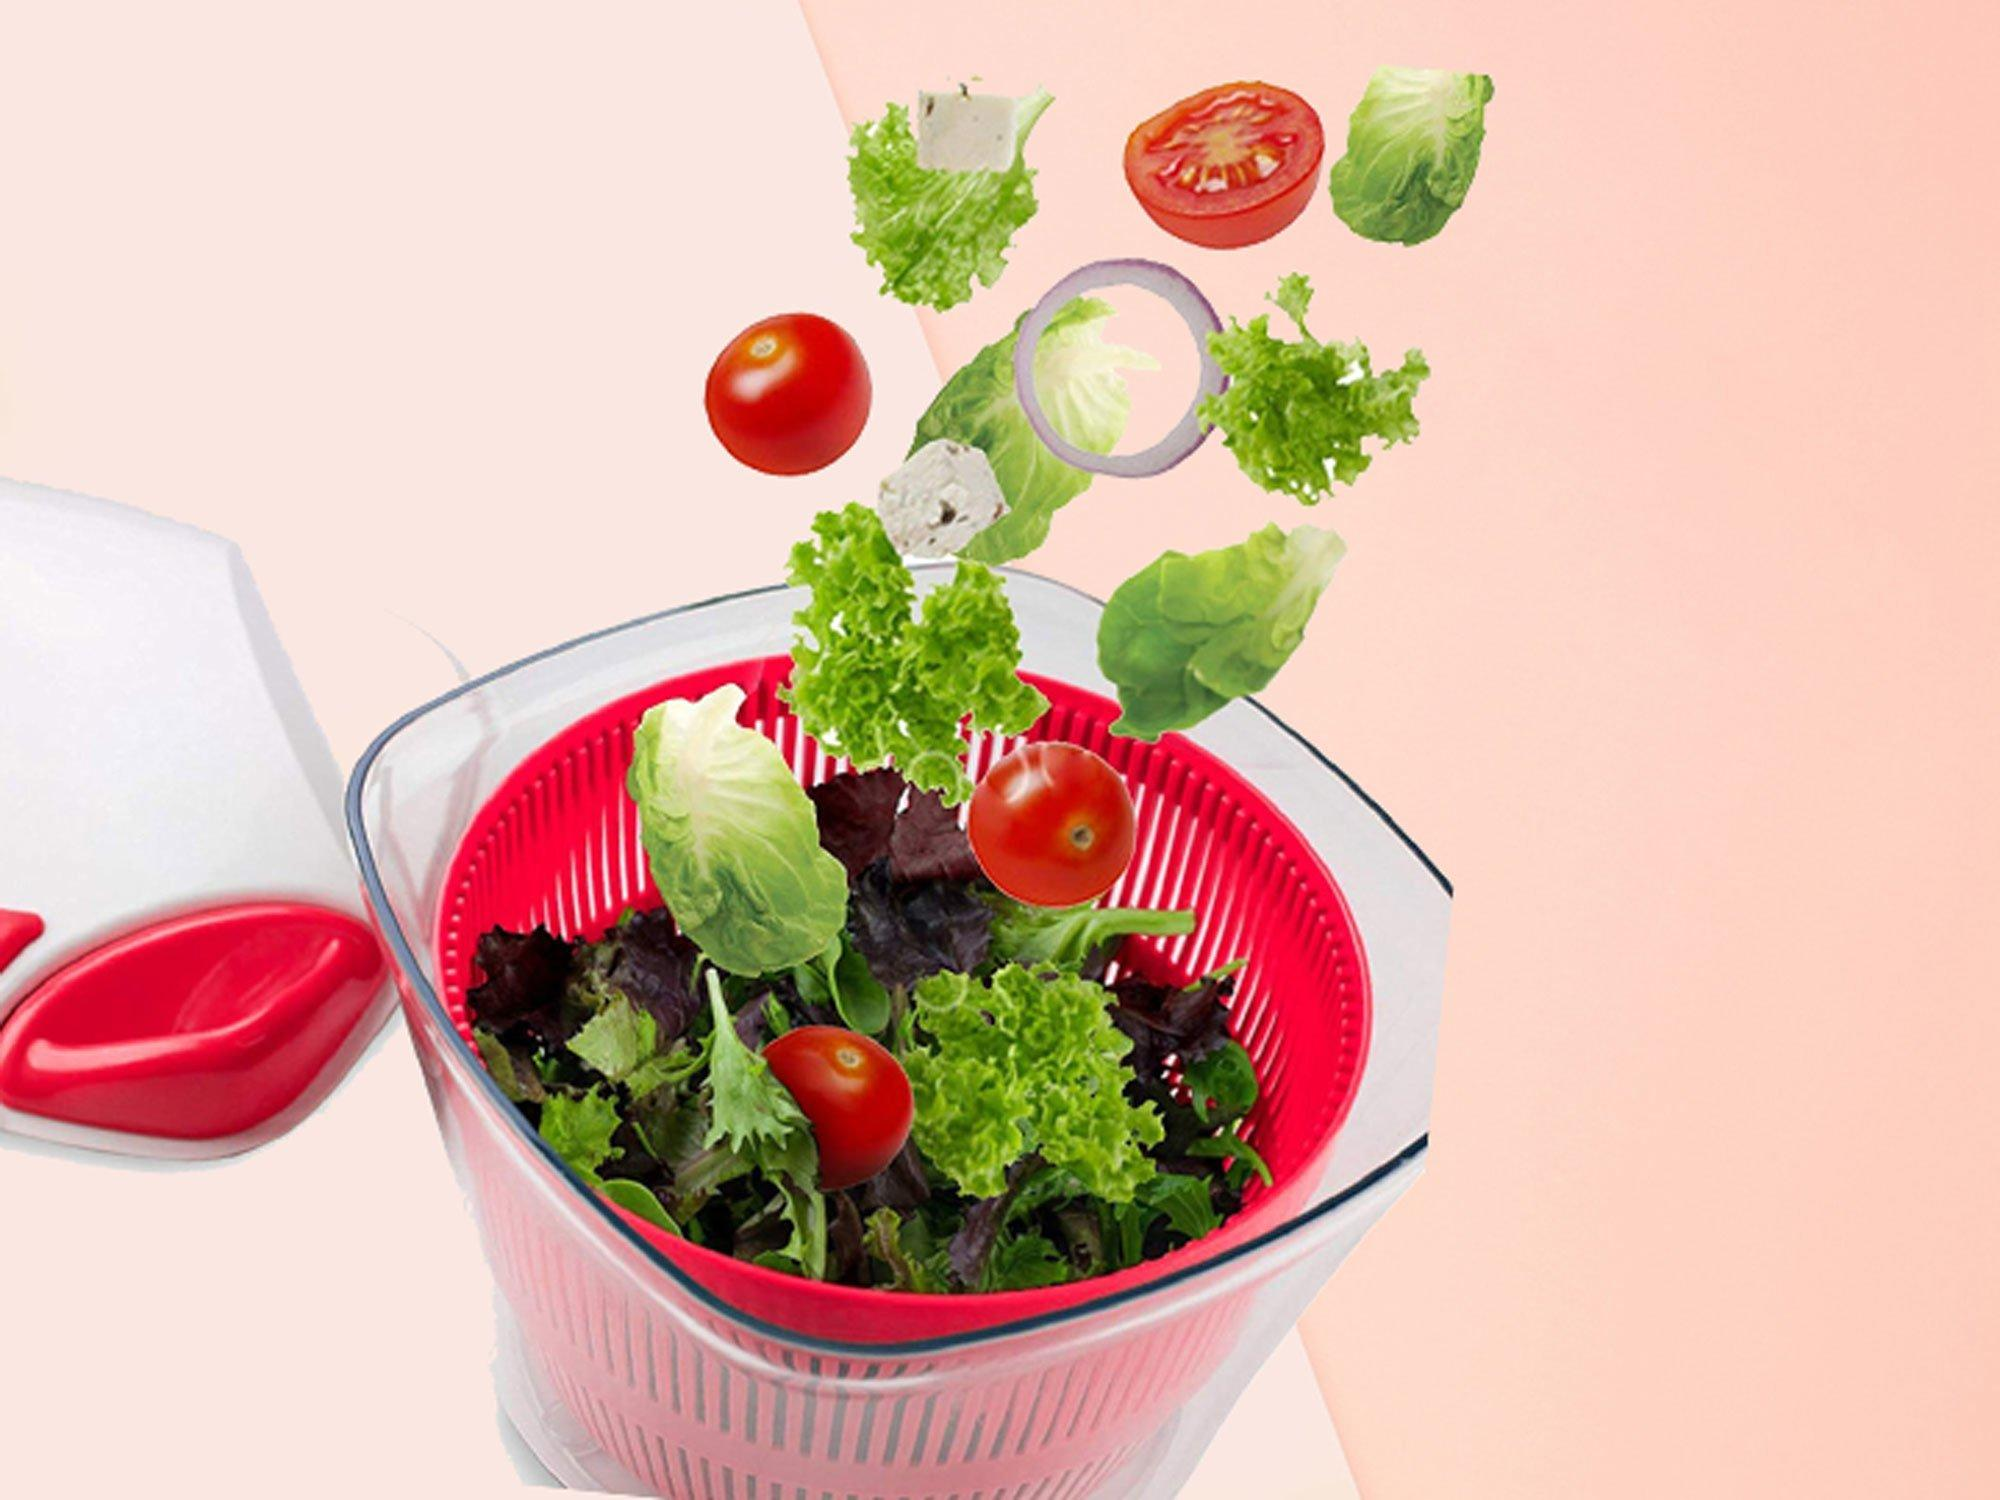 Best Salad Spinner 2020 This Award Winning Salad Spinner Is Climbing Amazon's Best Selling